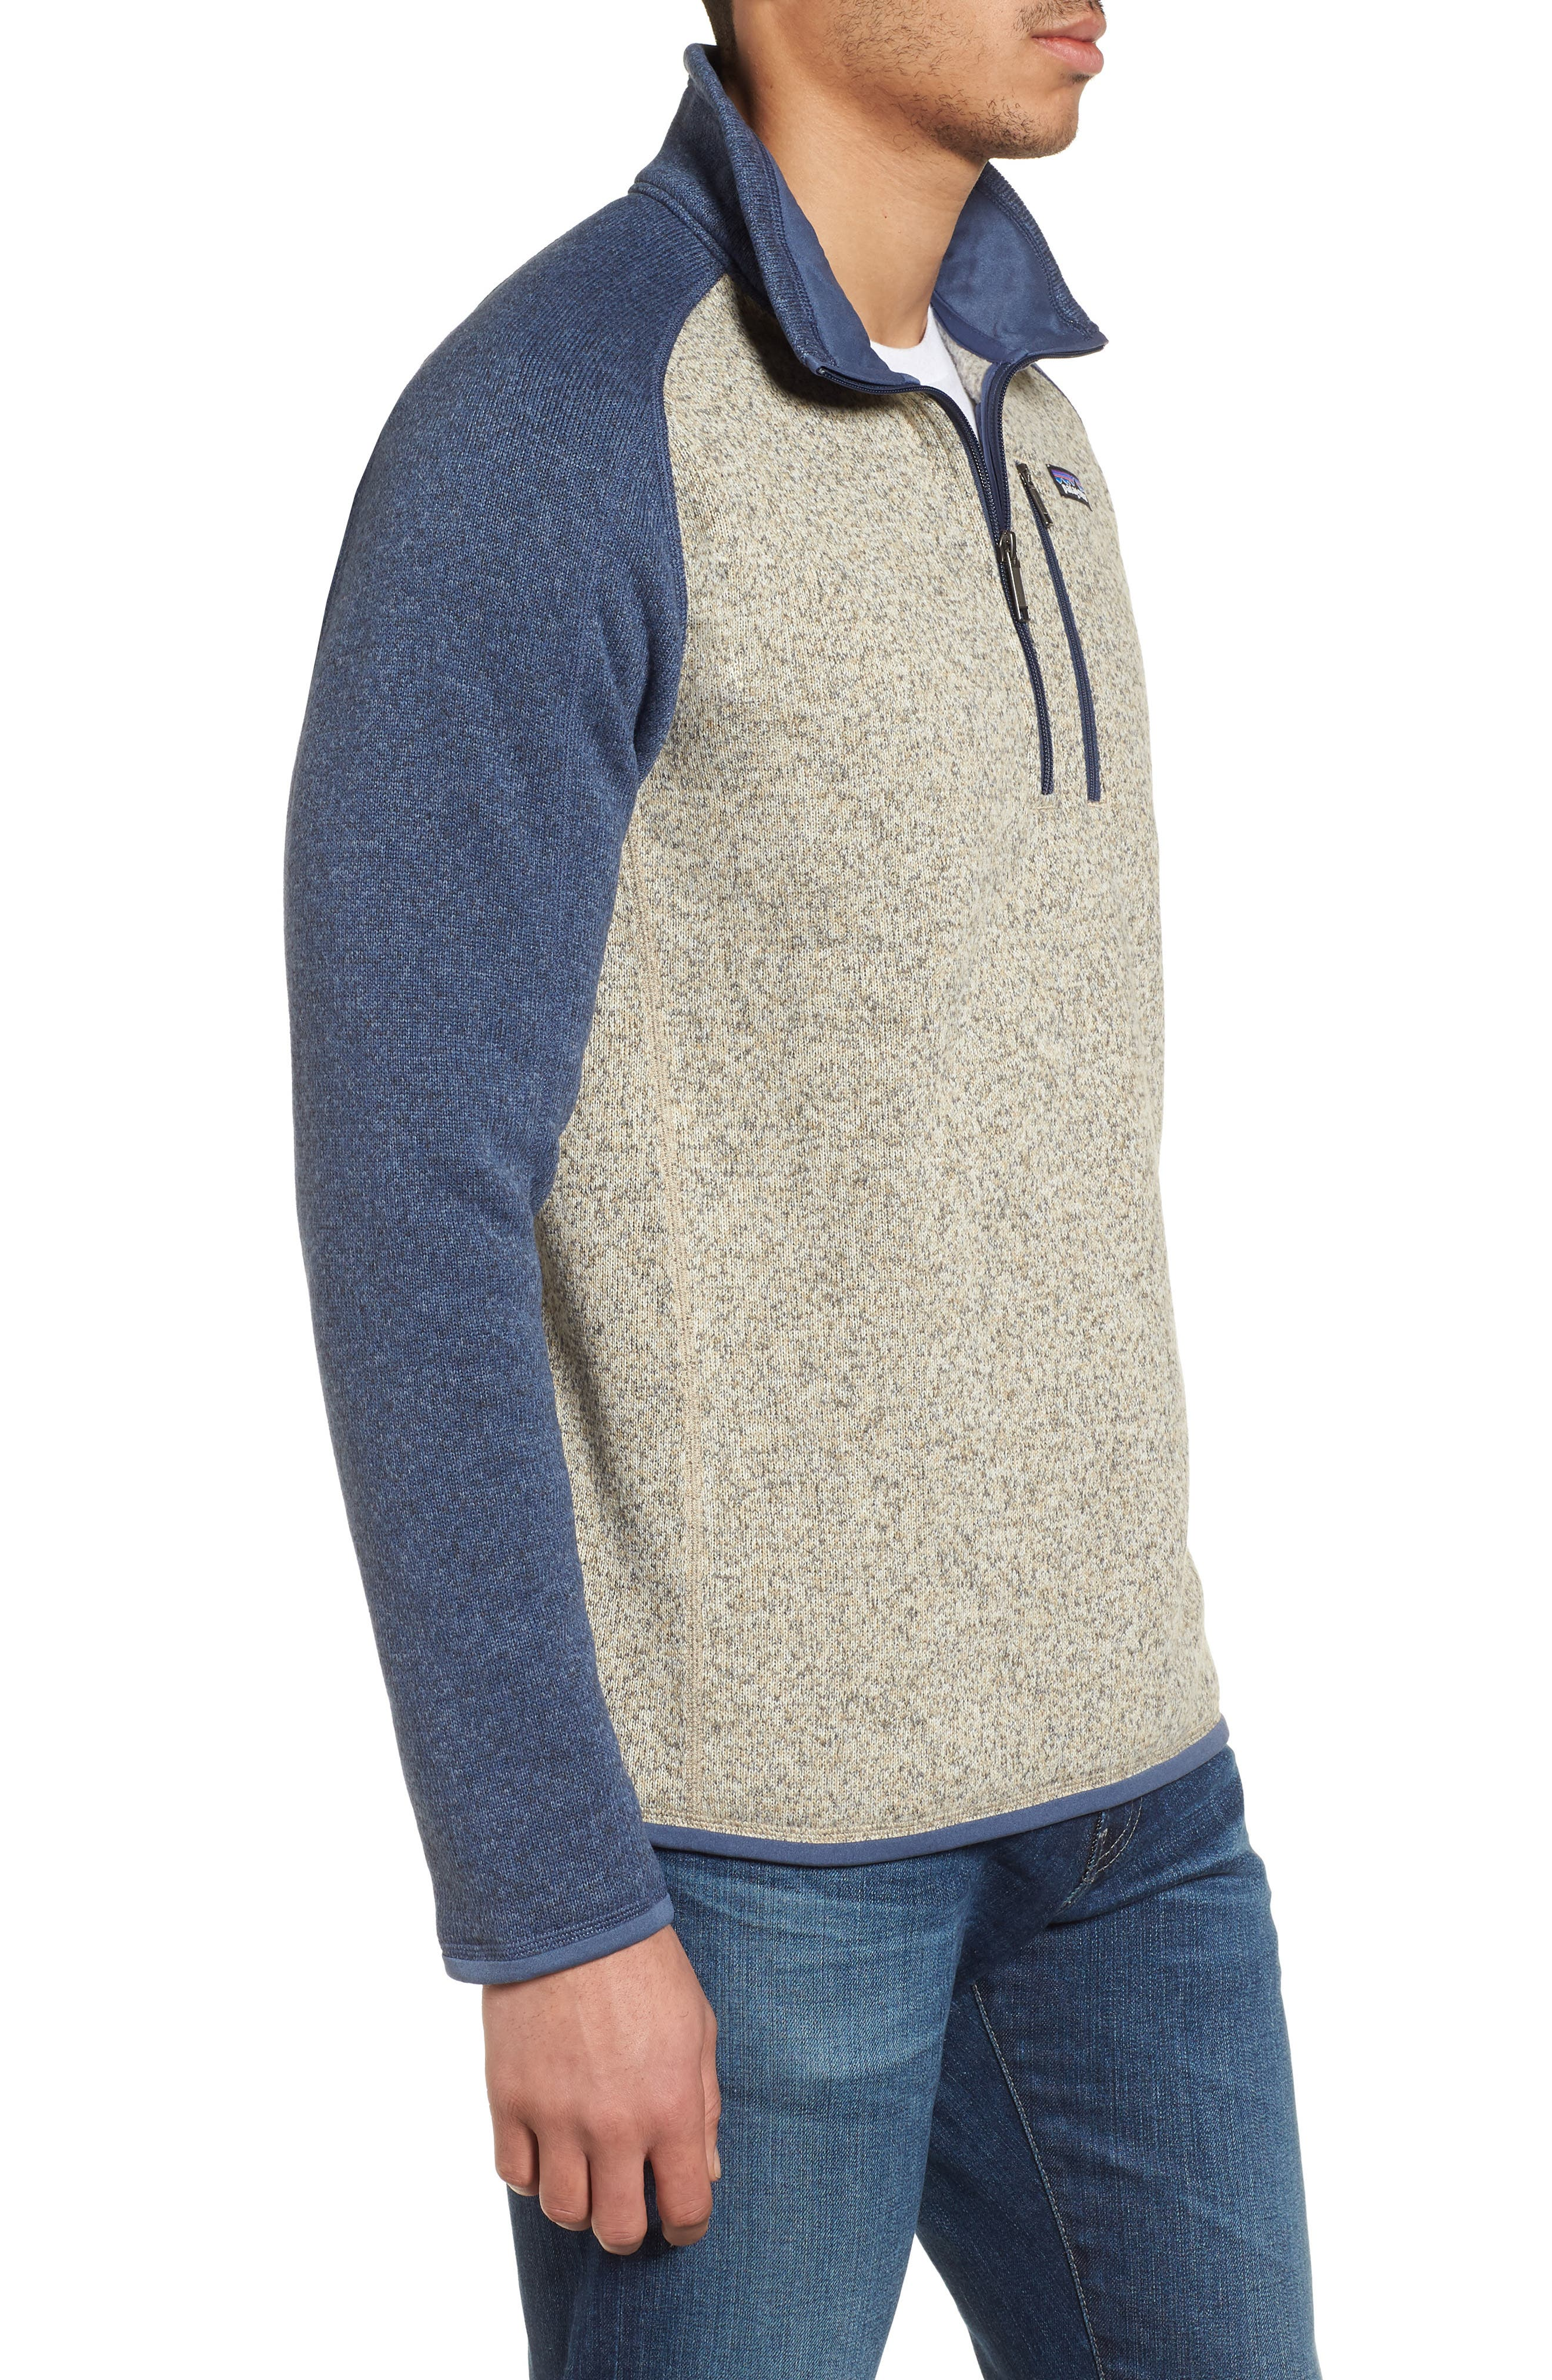 PATAGONIA, Better Sweater Quarter Zip Pullover, Alternate thumbnail 4, color, BLEACHED STONE W/DOLOMITE BLUE